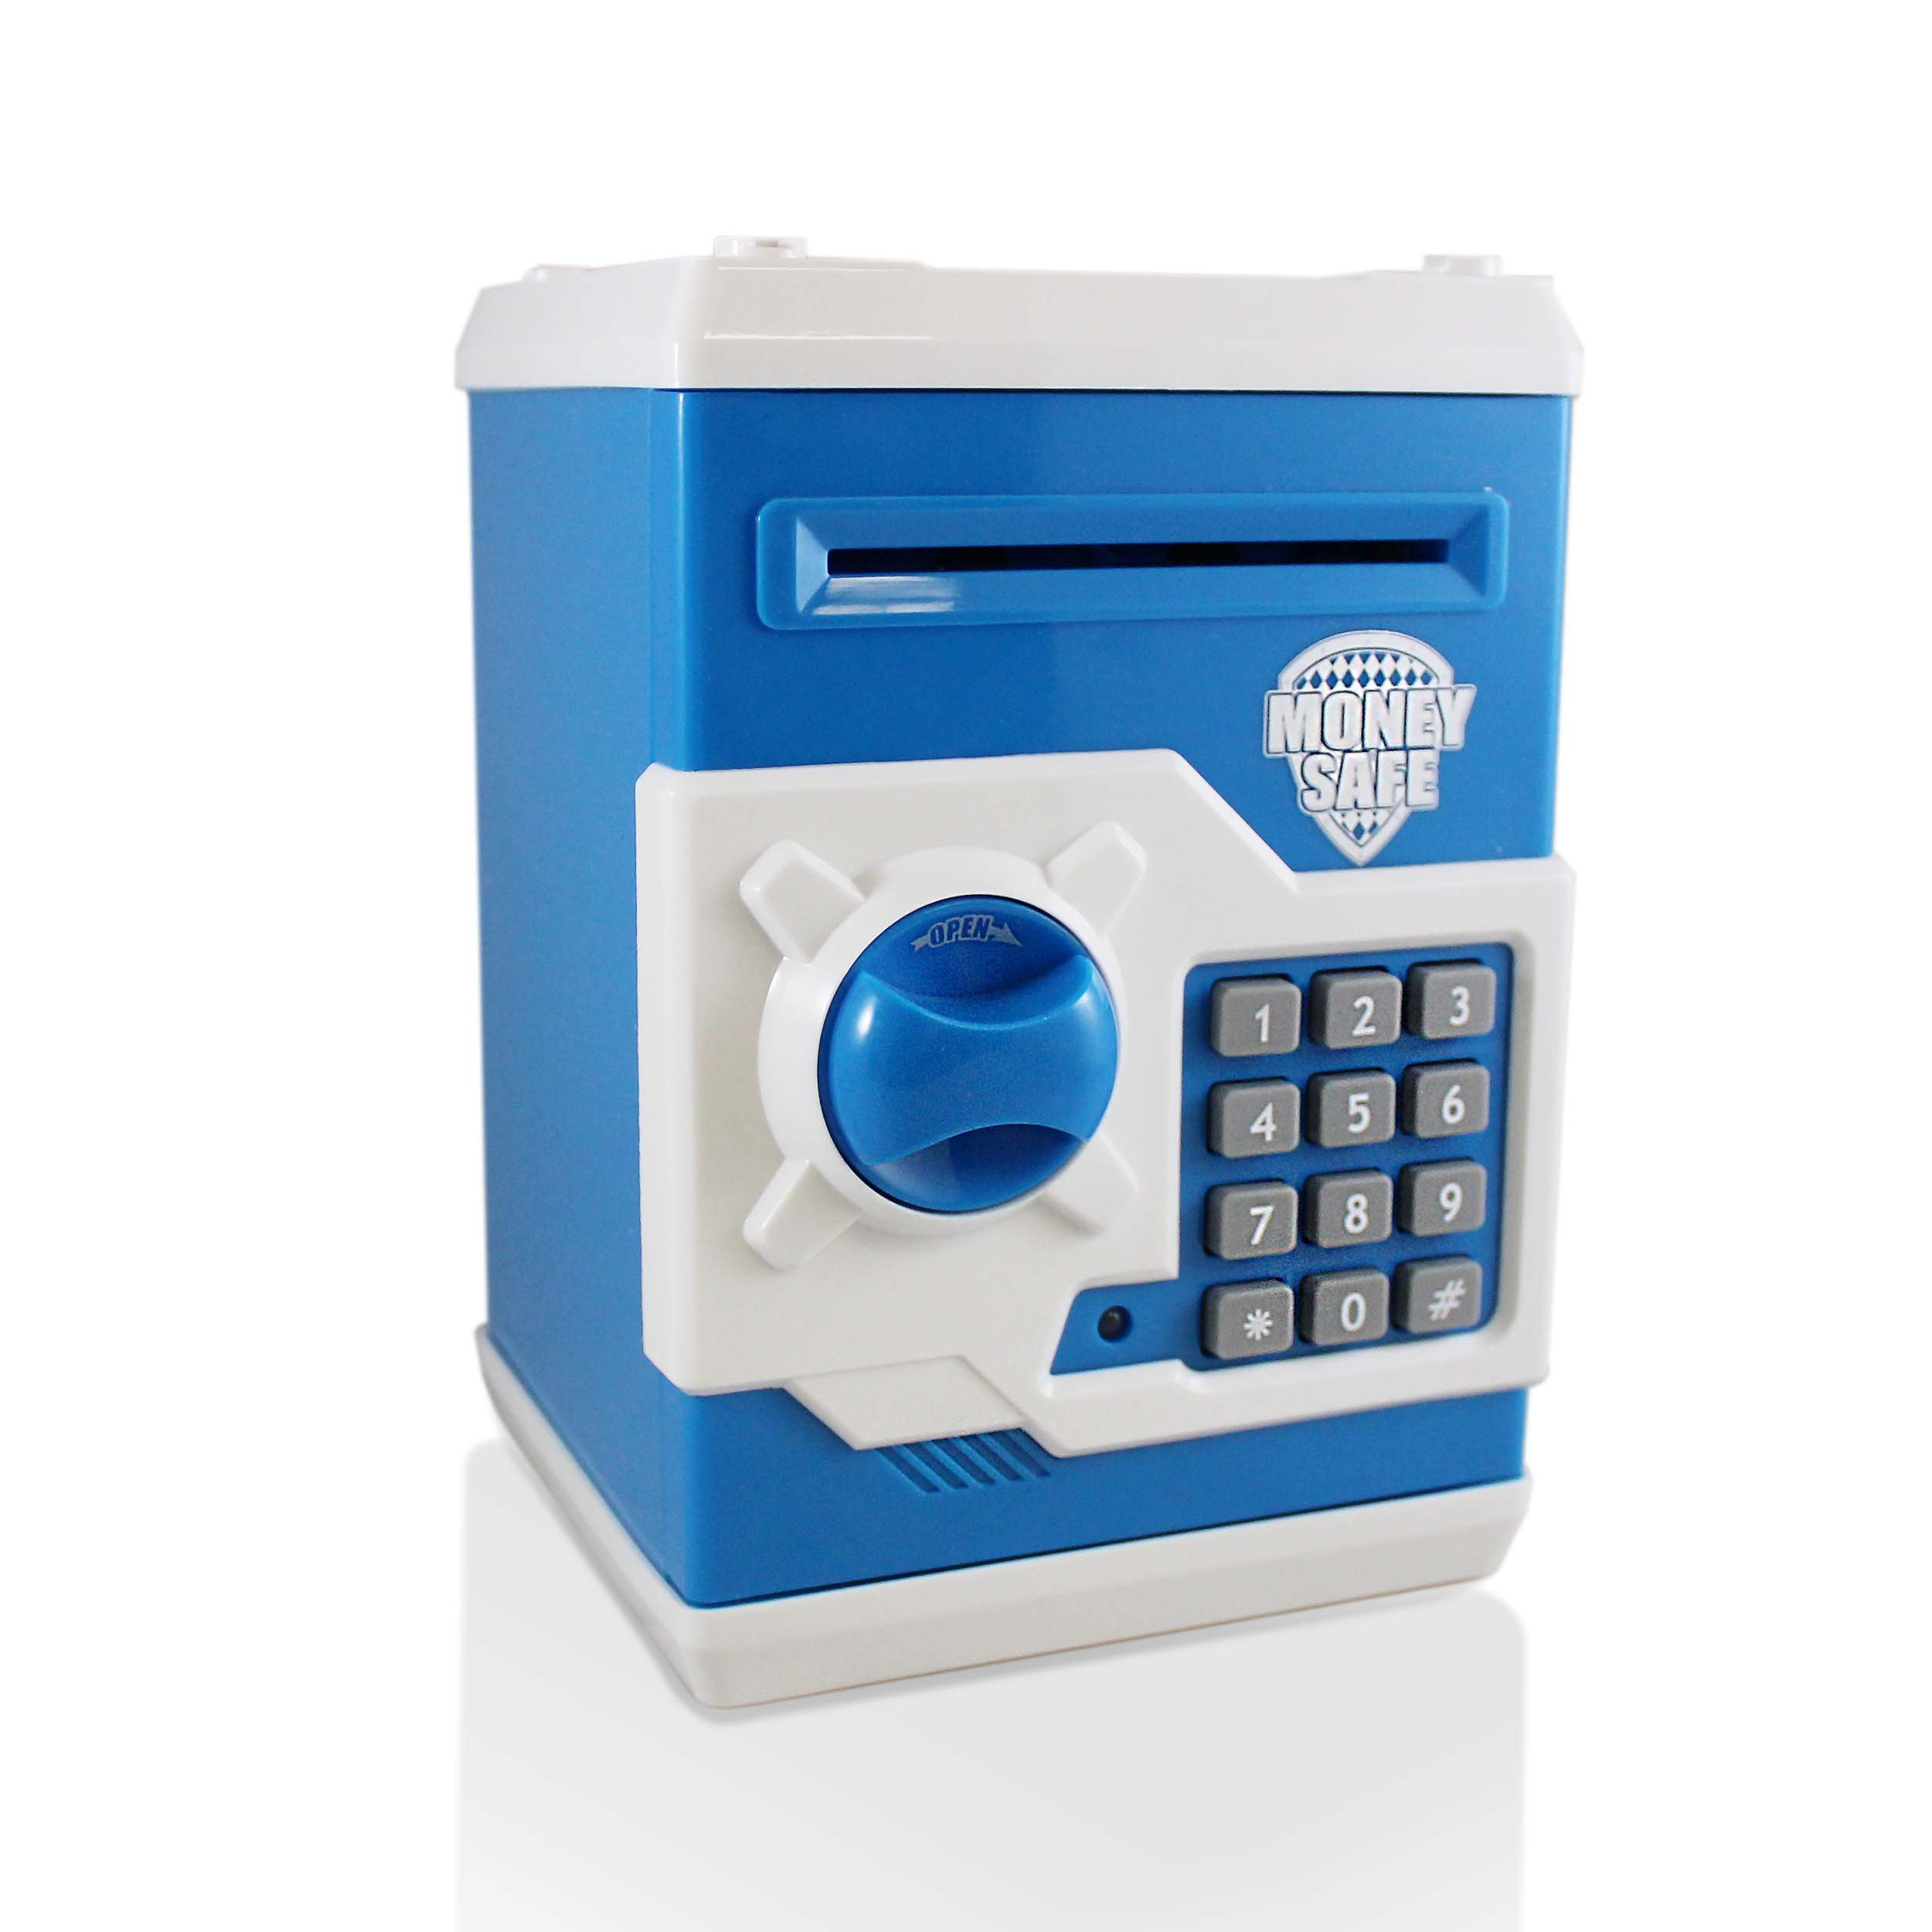 Dark Blue Safe Coin Bank For Kids - Authentic ATM Money Saver Keeps Cash, Toys, and Jewelry Inside Safe Inside - Auto Insert Bills and Electronic Password - Cool Piggy Bank Makes A Great Birthday Gift